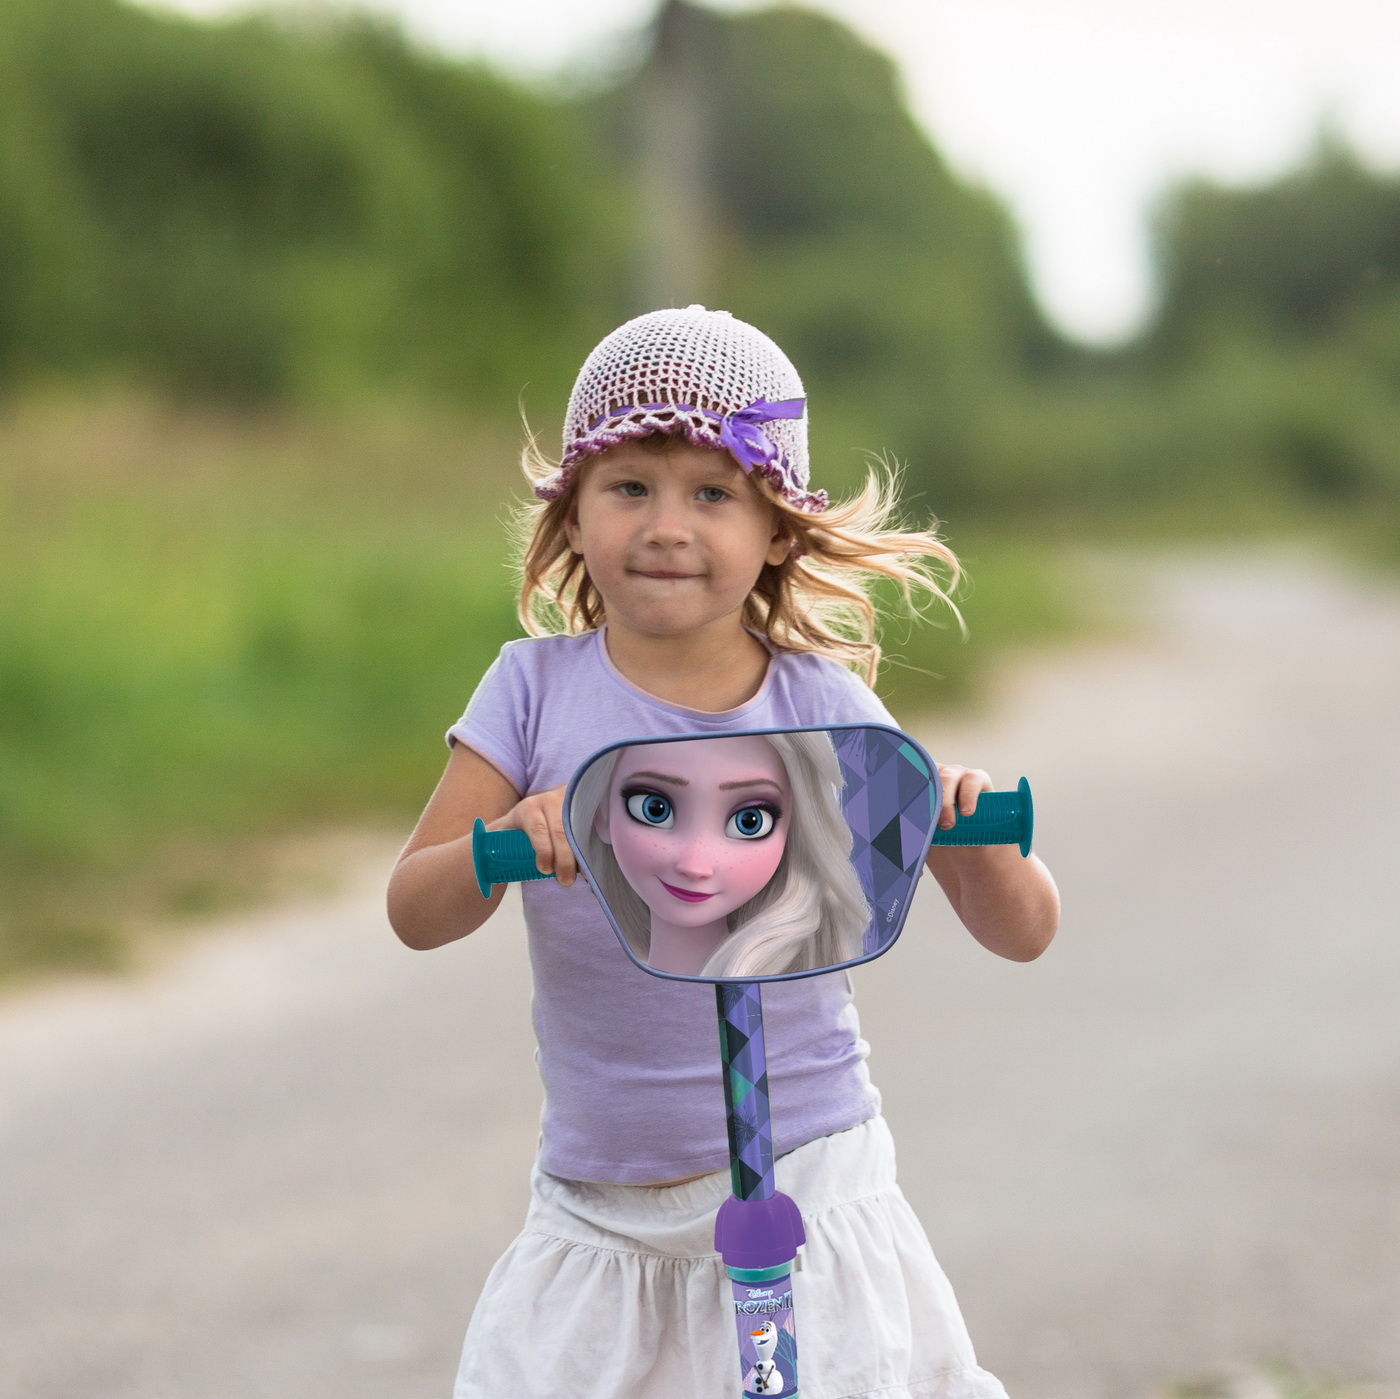 girl child riding  scooter on the road In the countryside, child